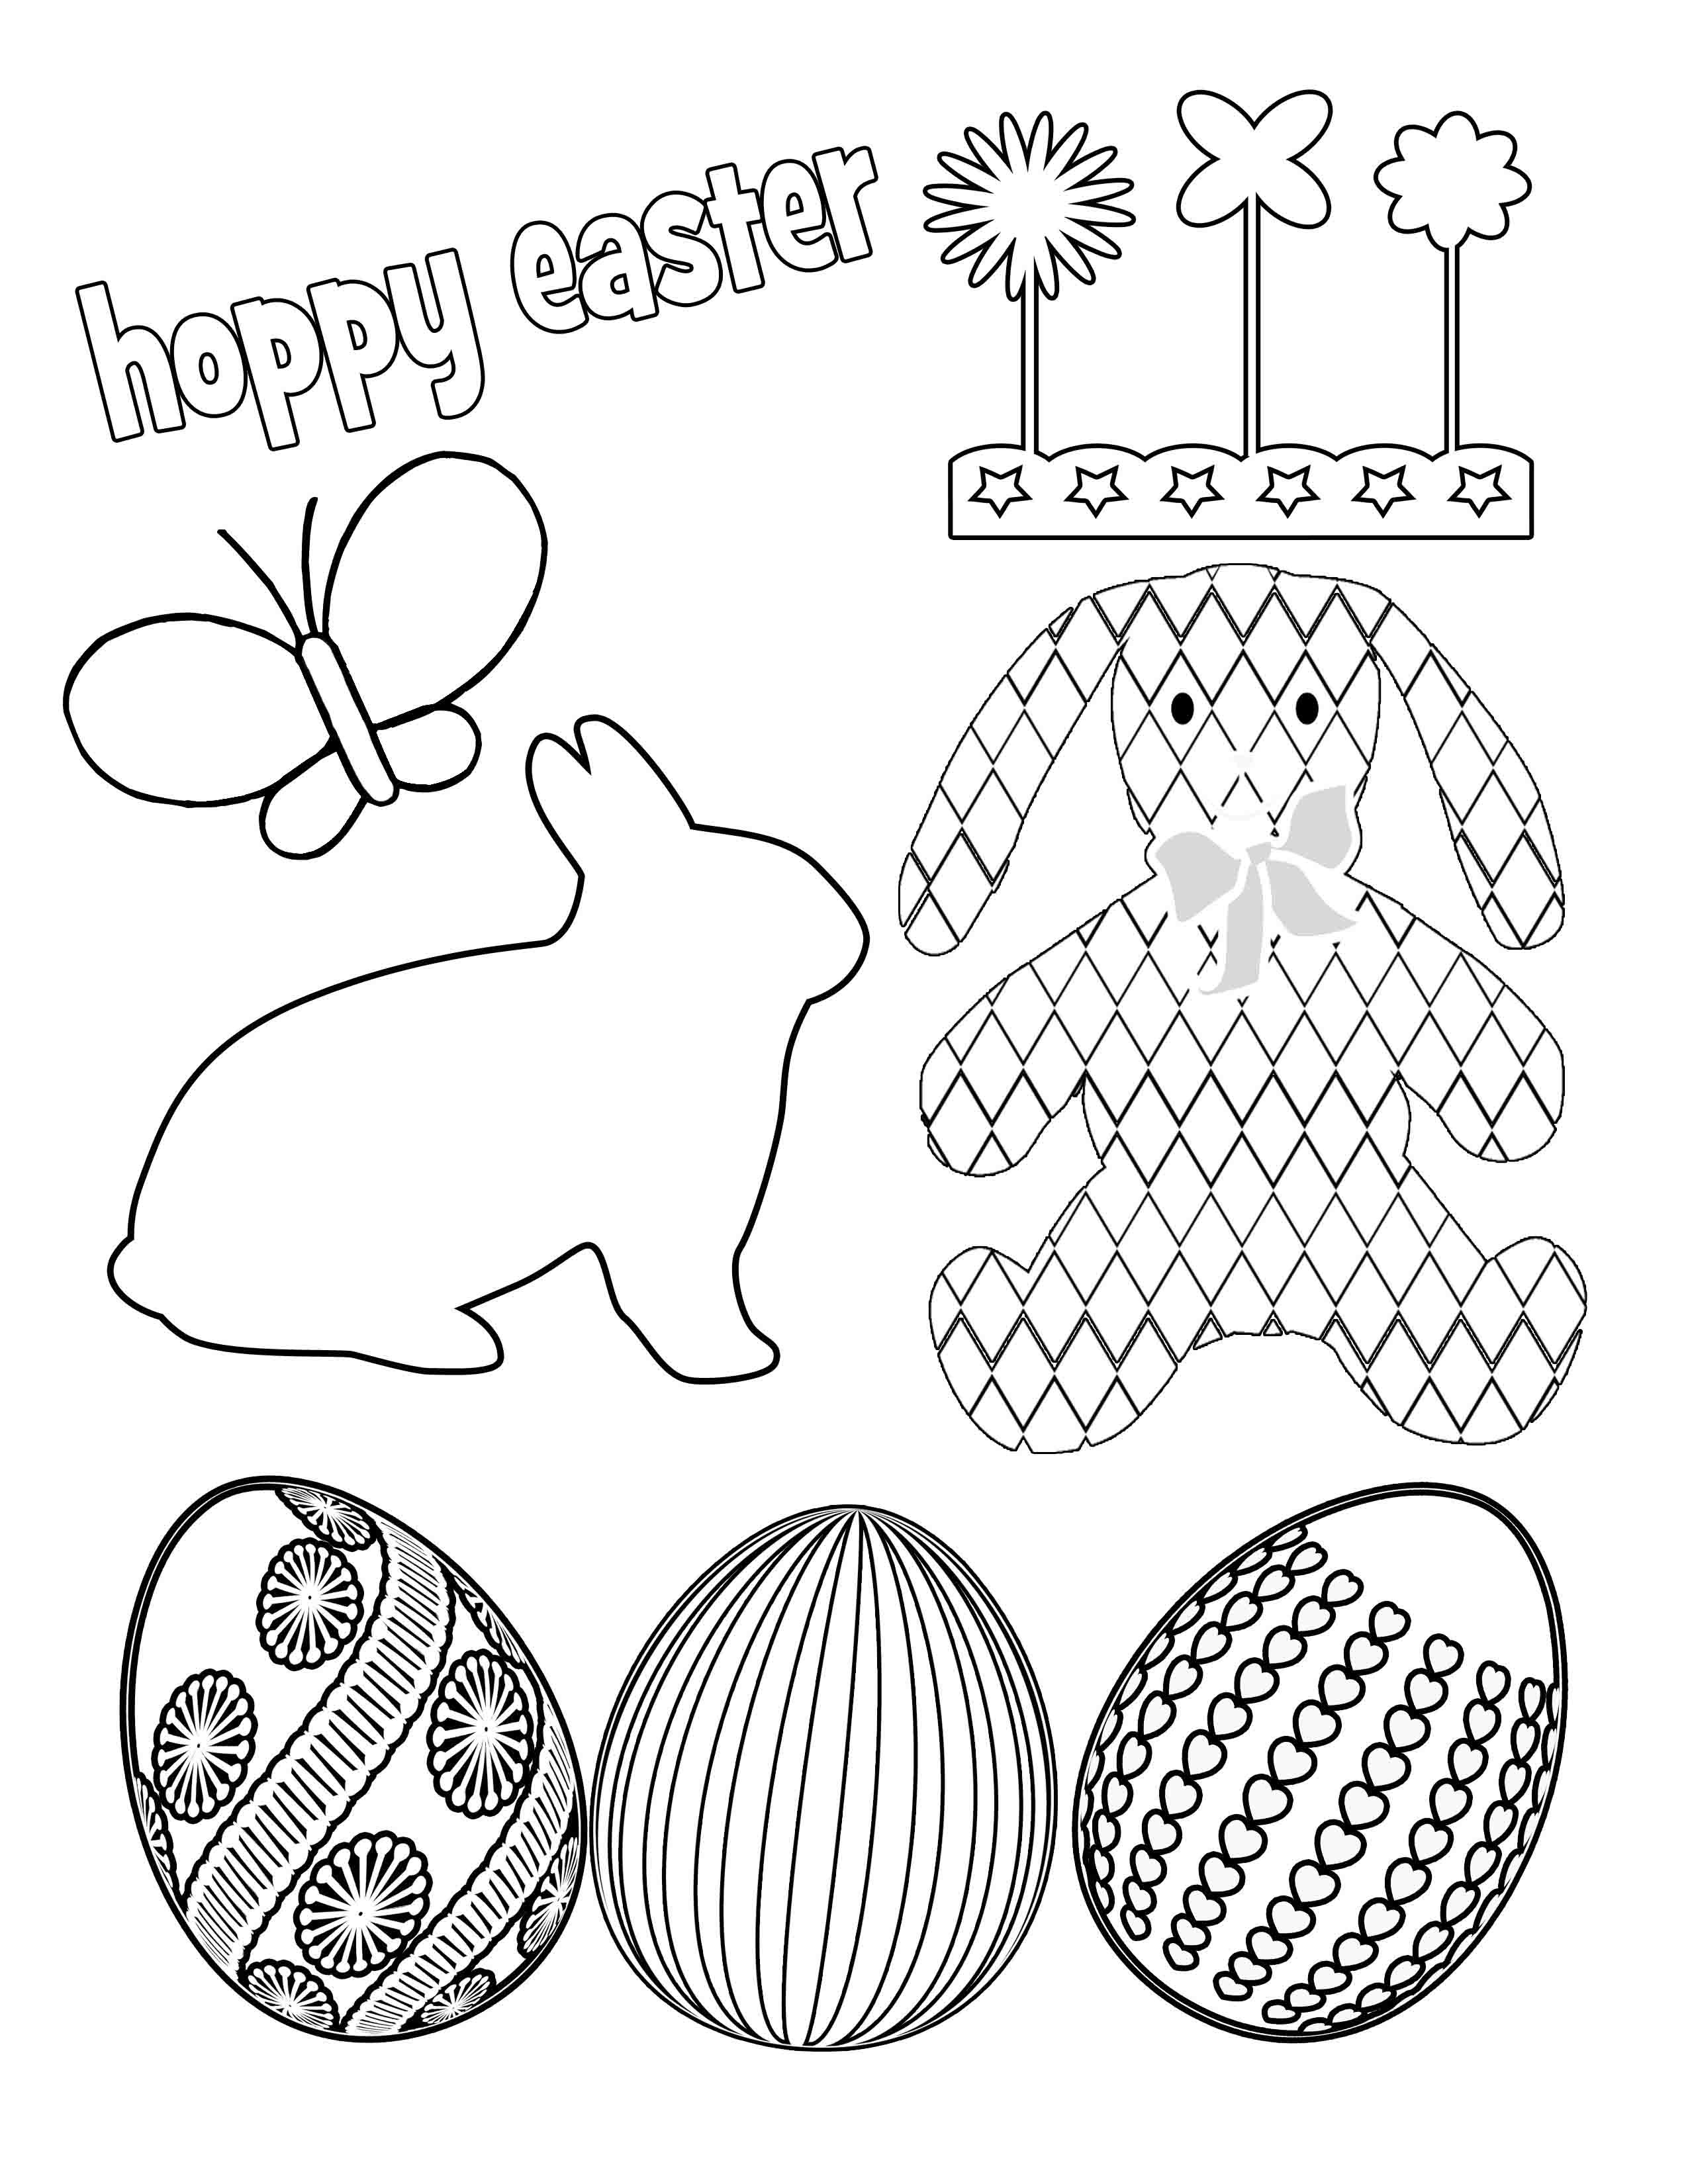 Easter Bunny Coloring Pages | BlueBonkers - Fluffy easter Bunny ... | 3300x2550